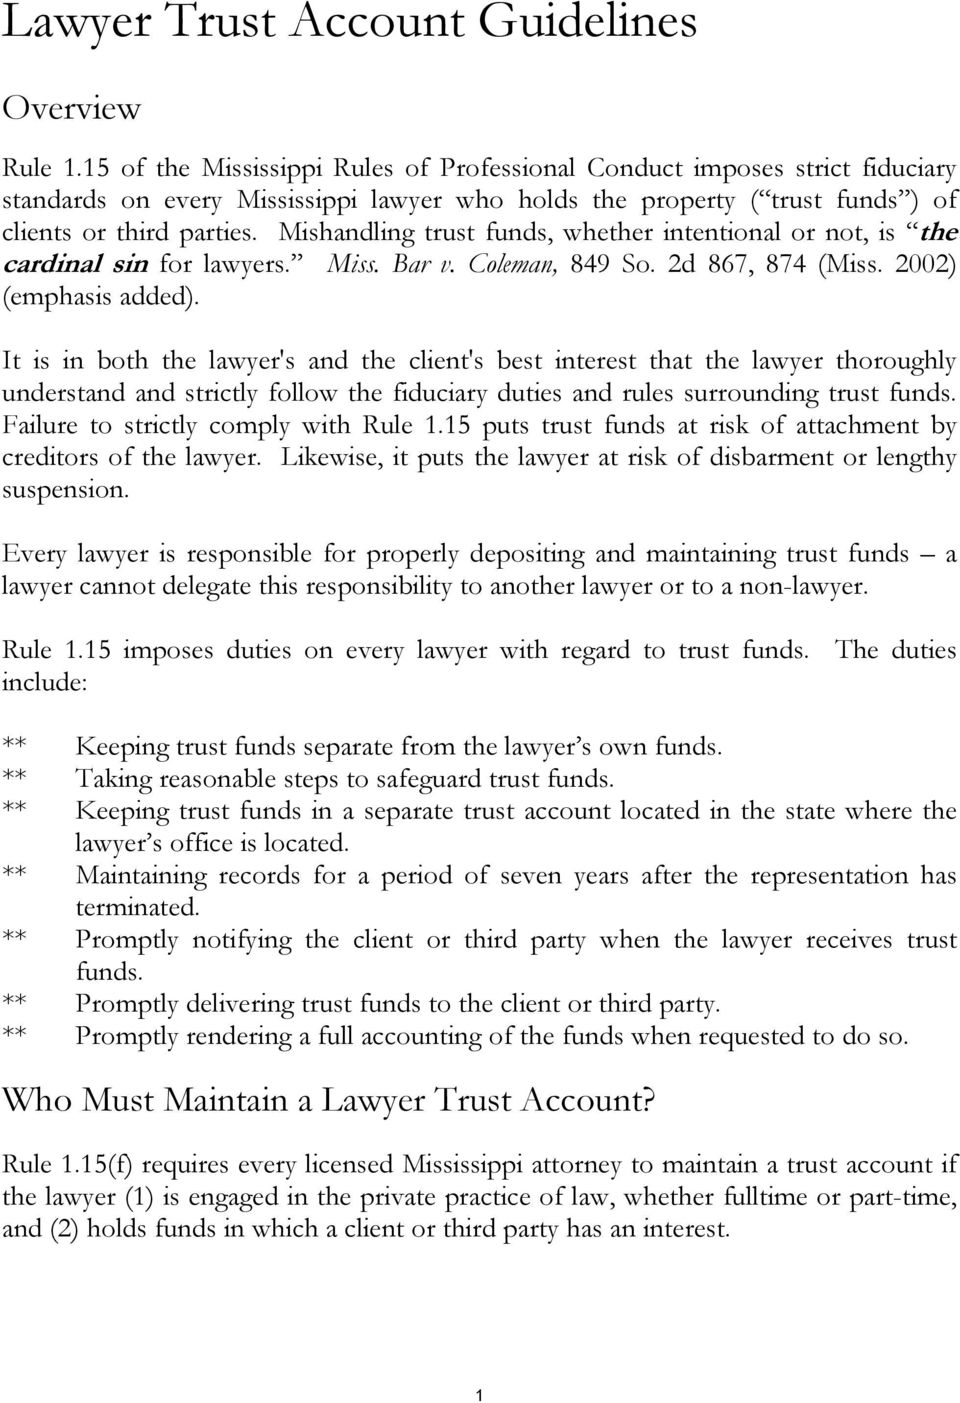 Mishandling trust funds, whether intentional or not, is the cardinal sin for lawyers. Miss. Bar v. Coleman, 849 So. 2d 867, 874 (Miss. 2002) (emphasis added).